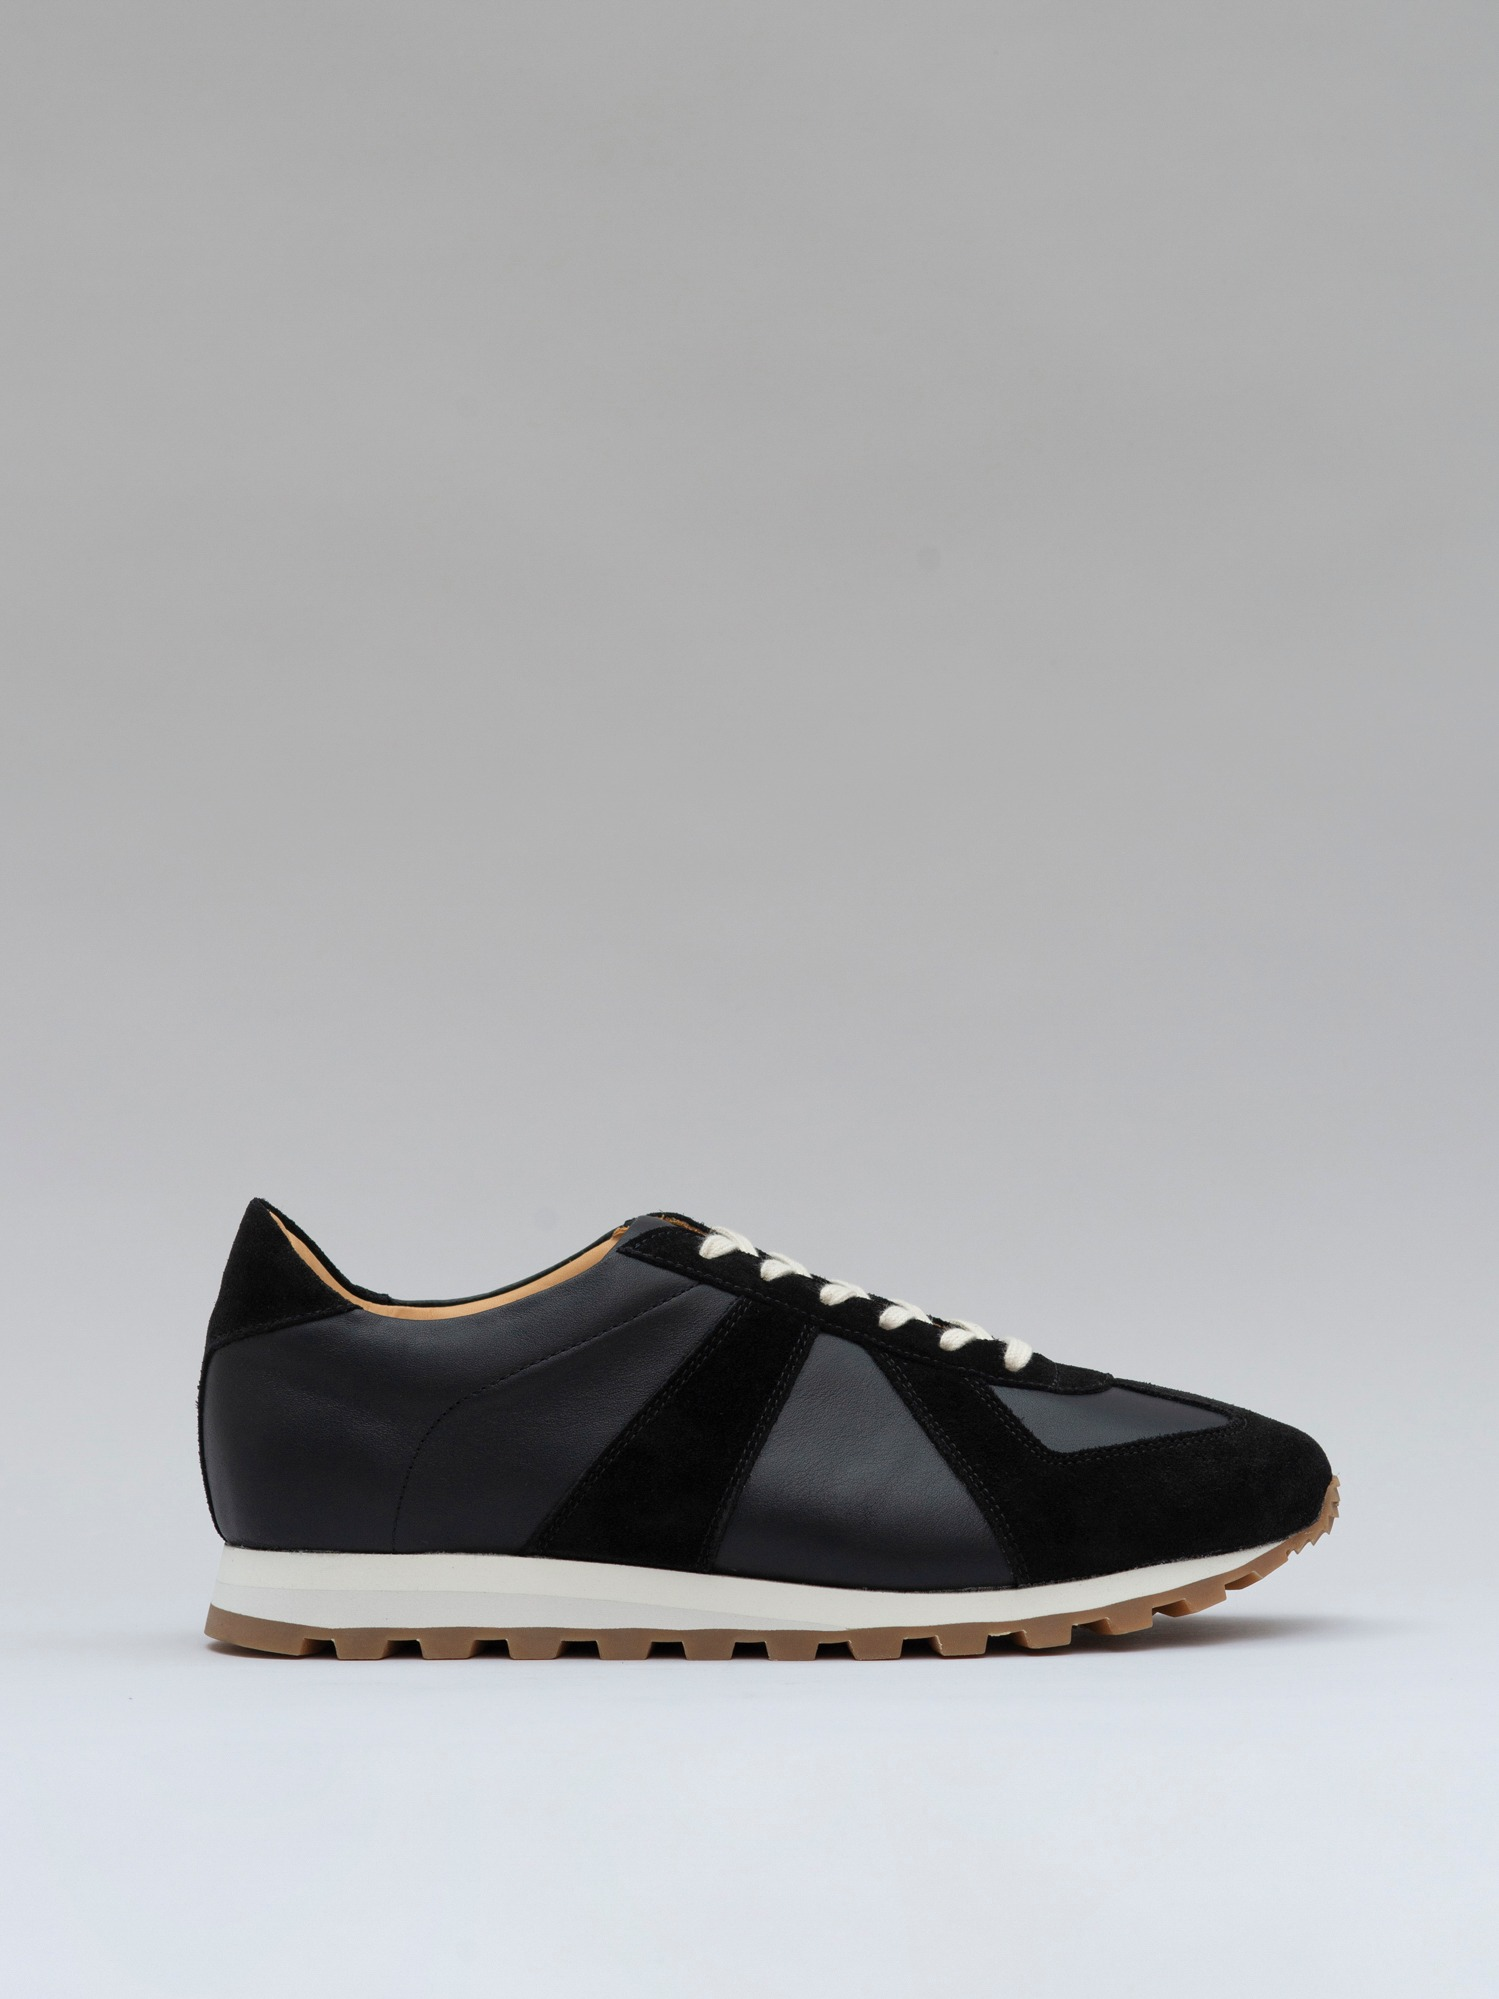 balmoral 07 suede/leather black